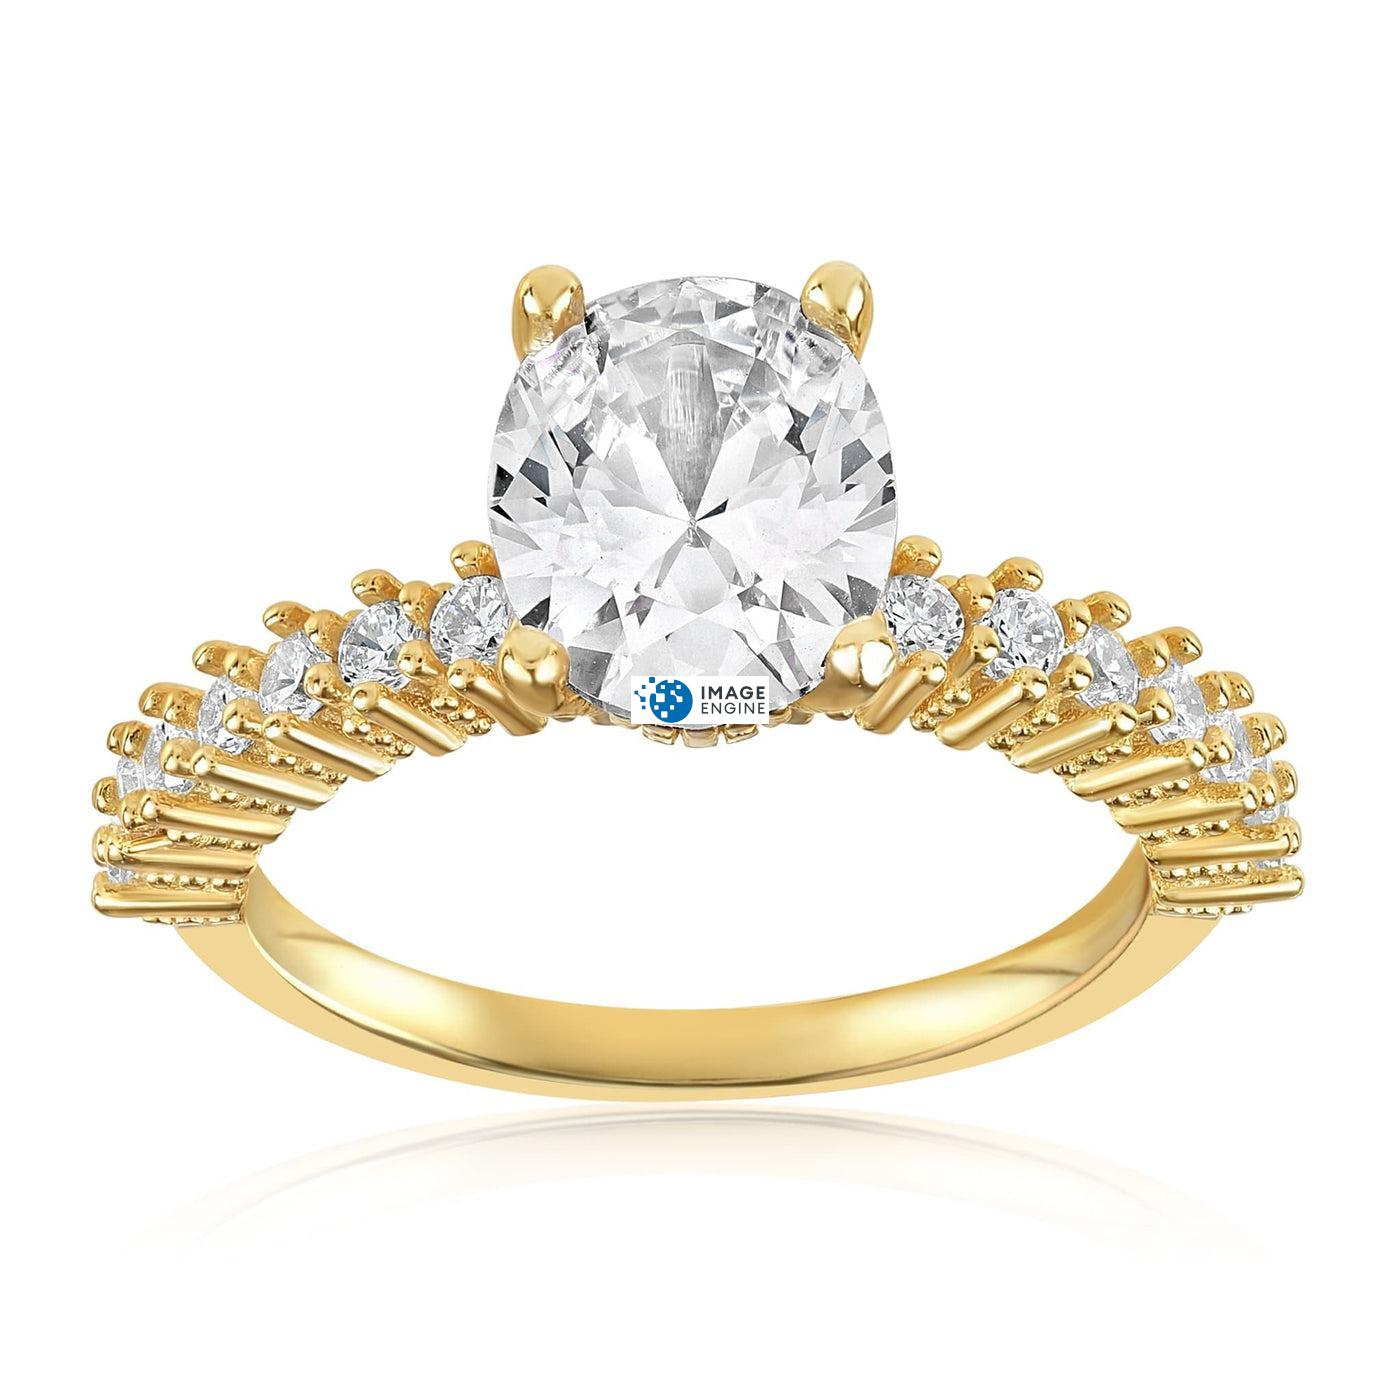 Cara Zirconia Ring - Front View Facing Up - 18K Yellow Gold Vermeil